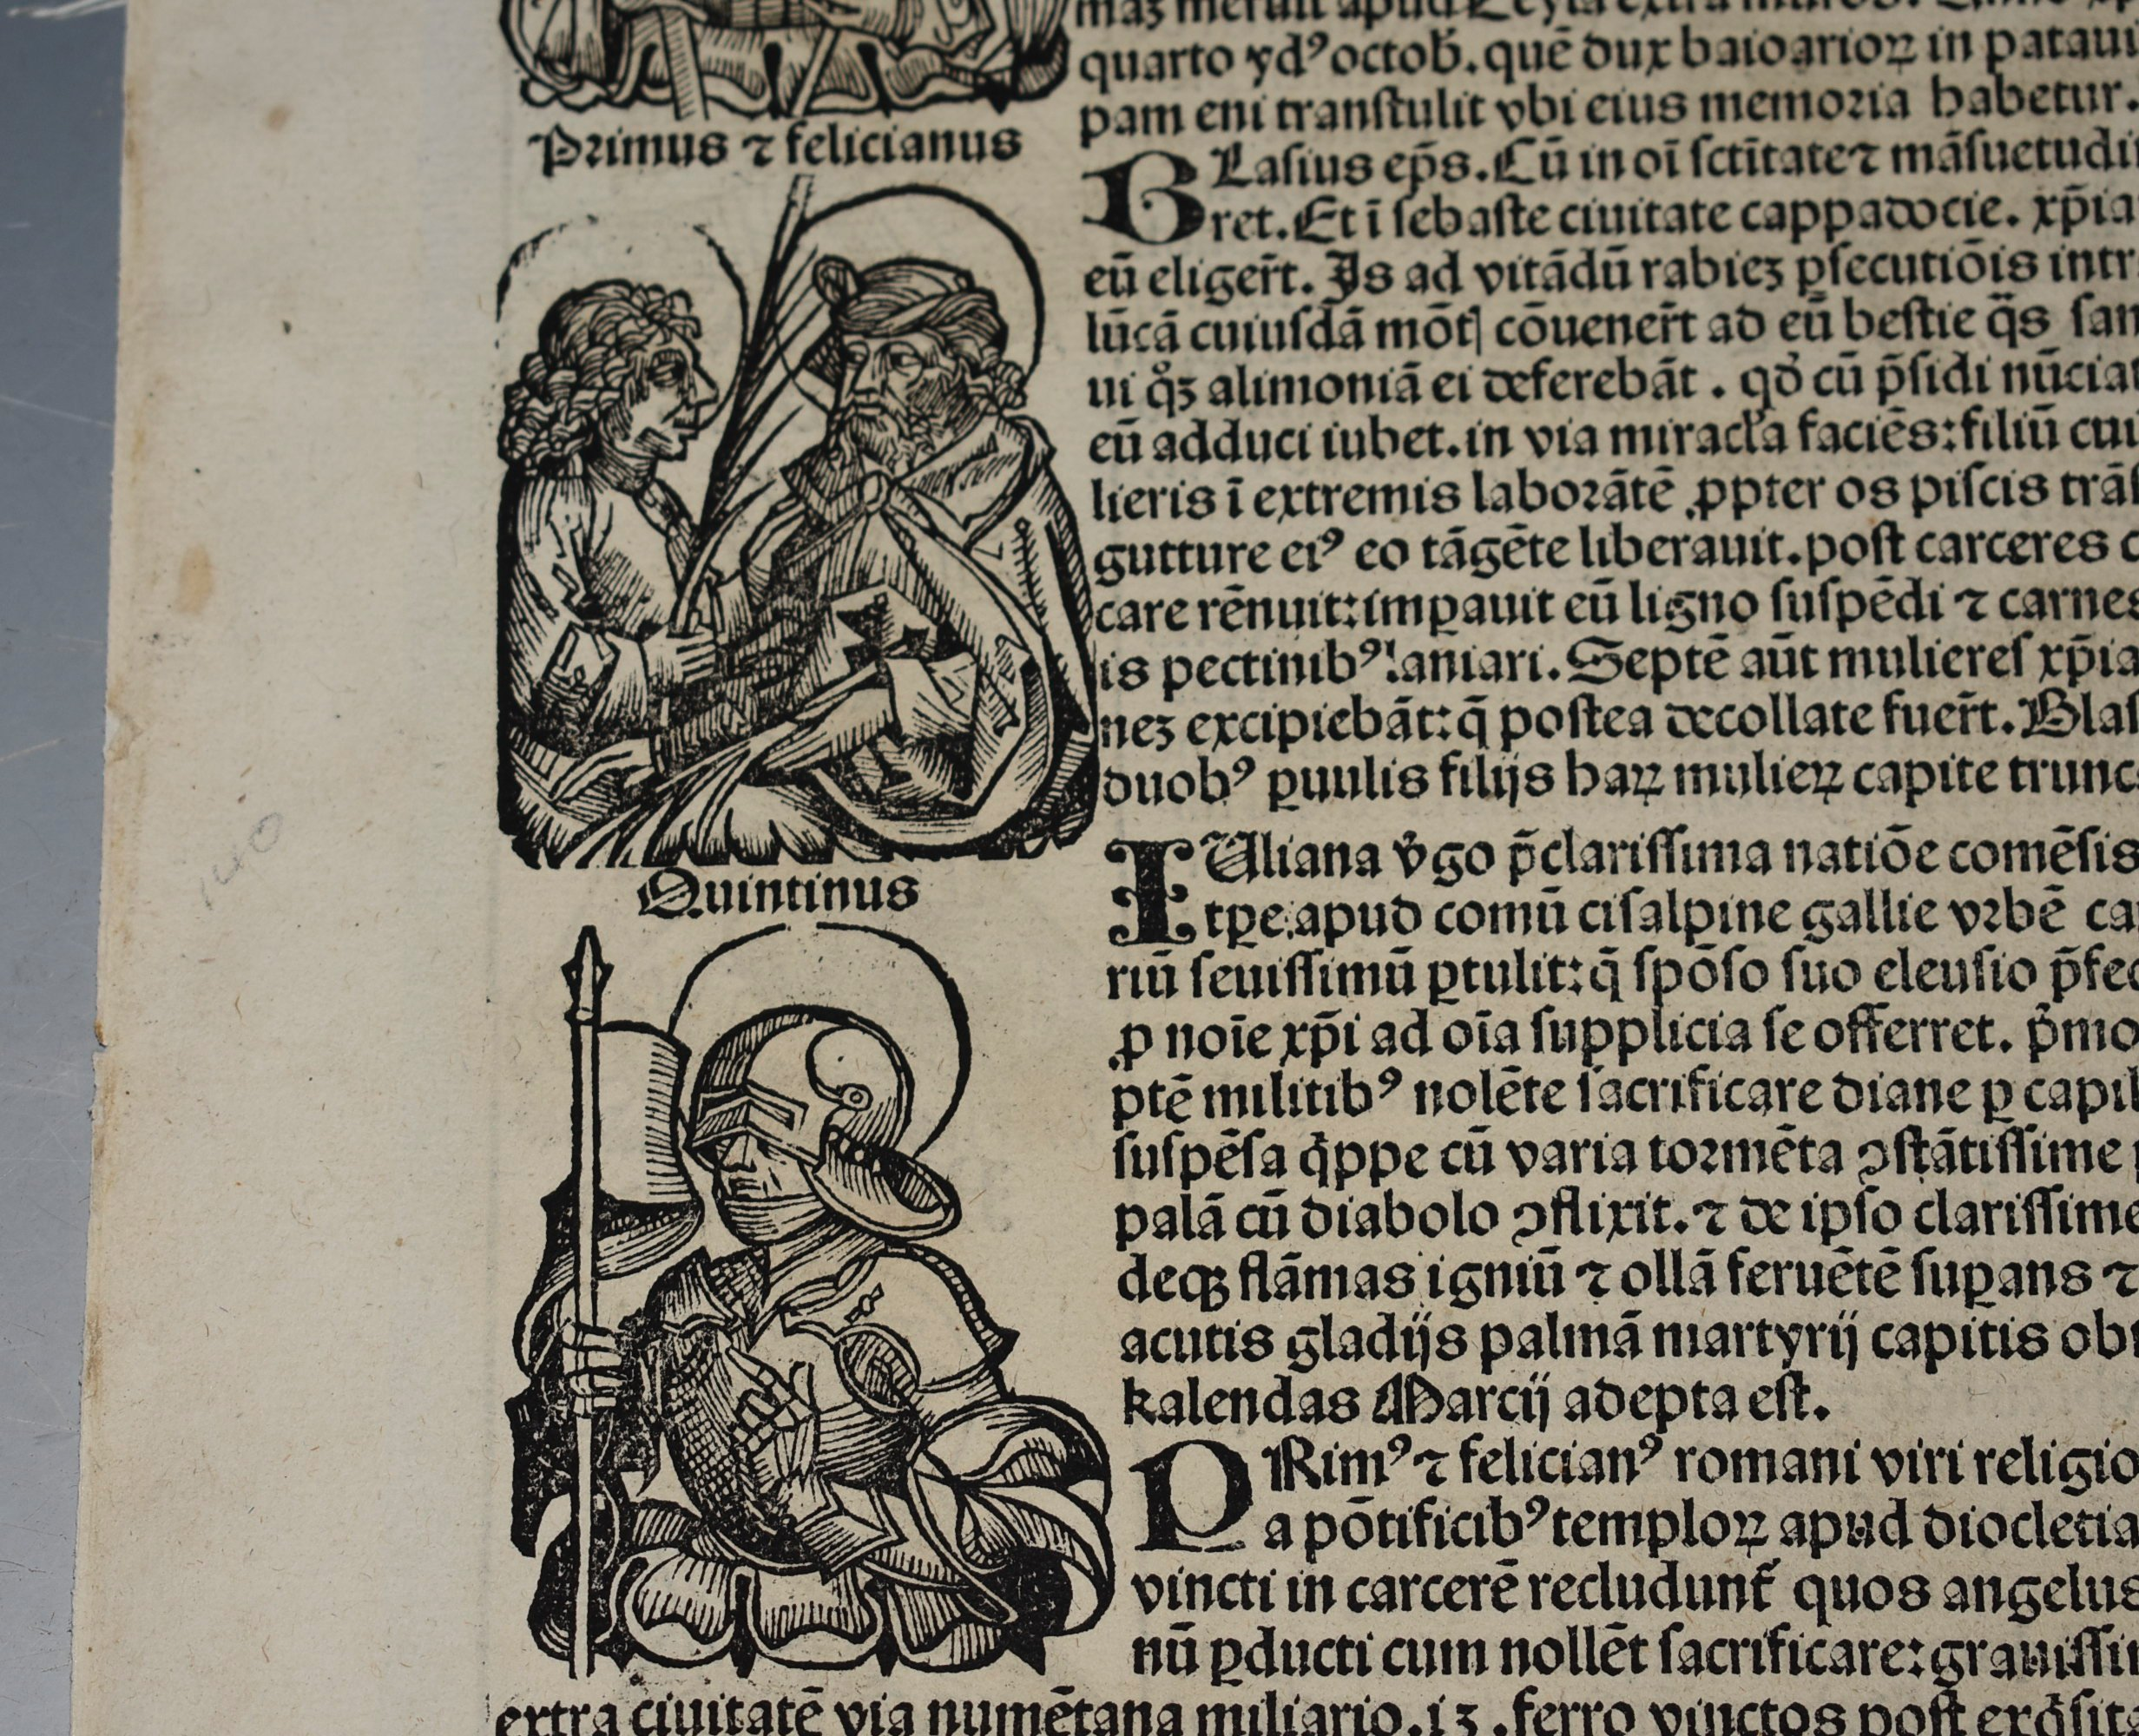 Image for Original Woodcut Leaf of Bishops. LIBER CHRONICARUM- NUREMBERG CHRONICLE, AN INDIVIDUAL PAGE FROM THE CHRONICLE FEATURING LINEAGE OF CHRIST, ATHALIAH, LINEAGE OF ITALIAN AND ISRAELITE KINGS, PLATE NO. CXXVI.